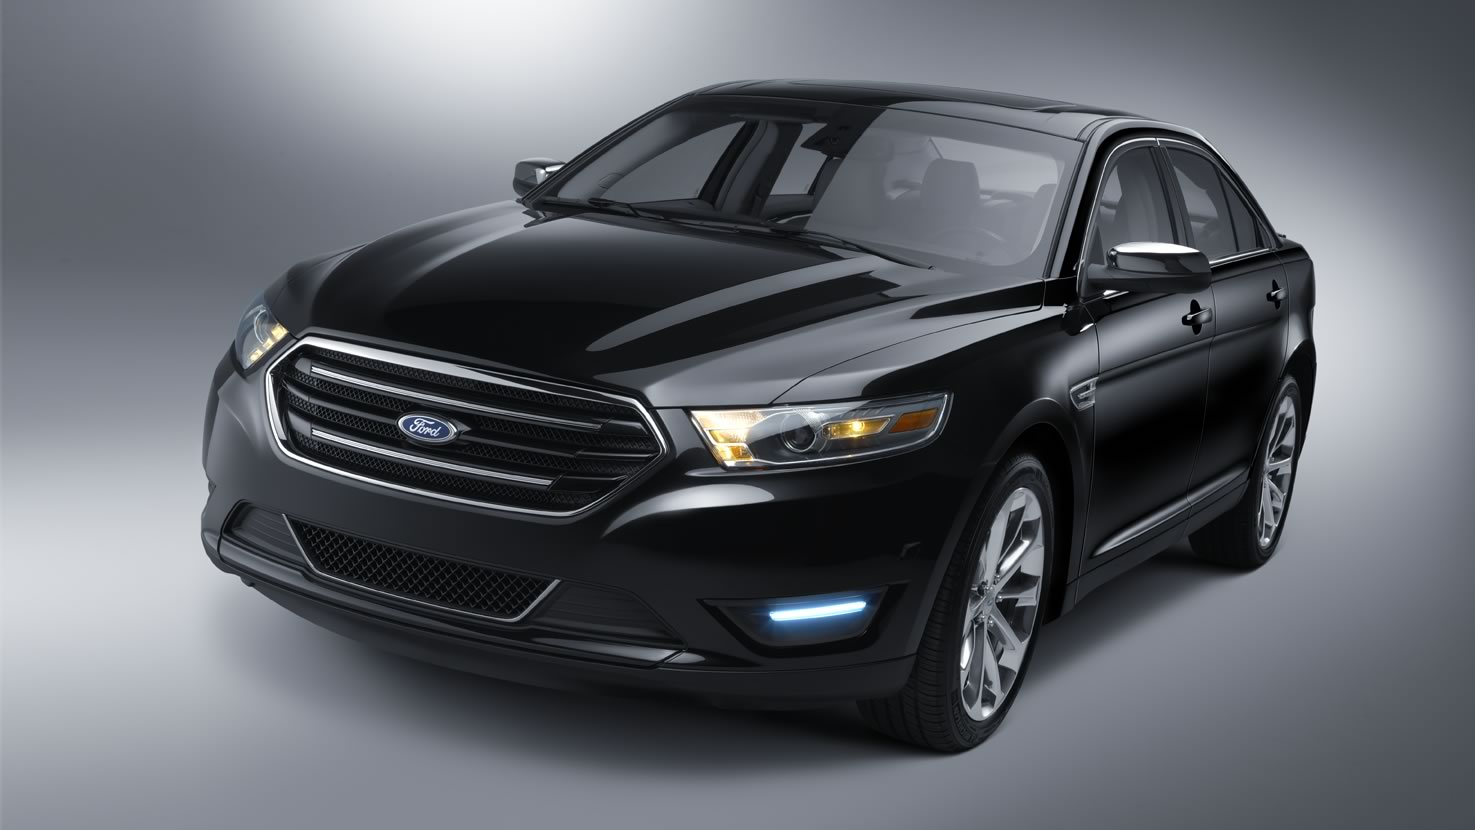 Ford Taurus black #4